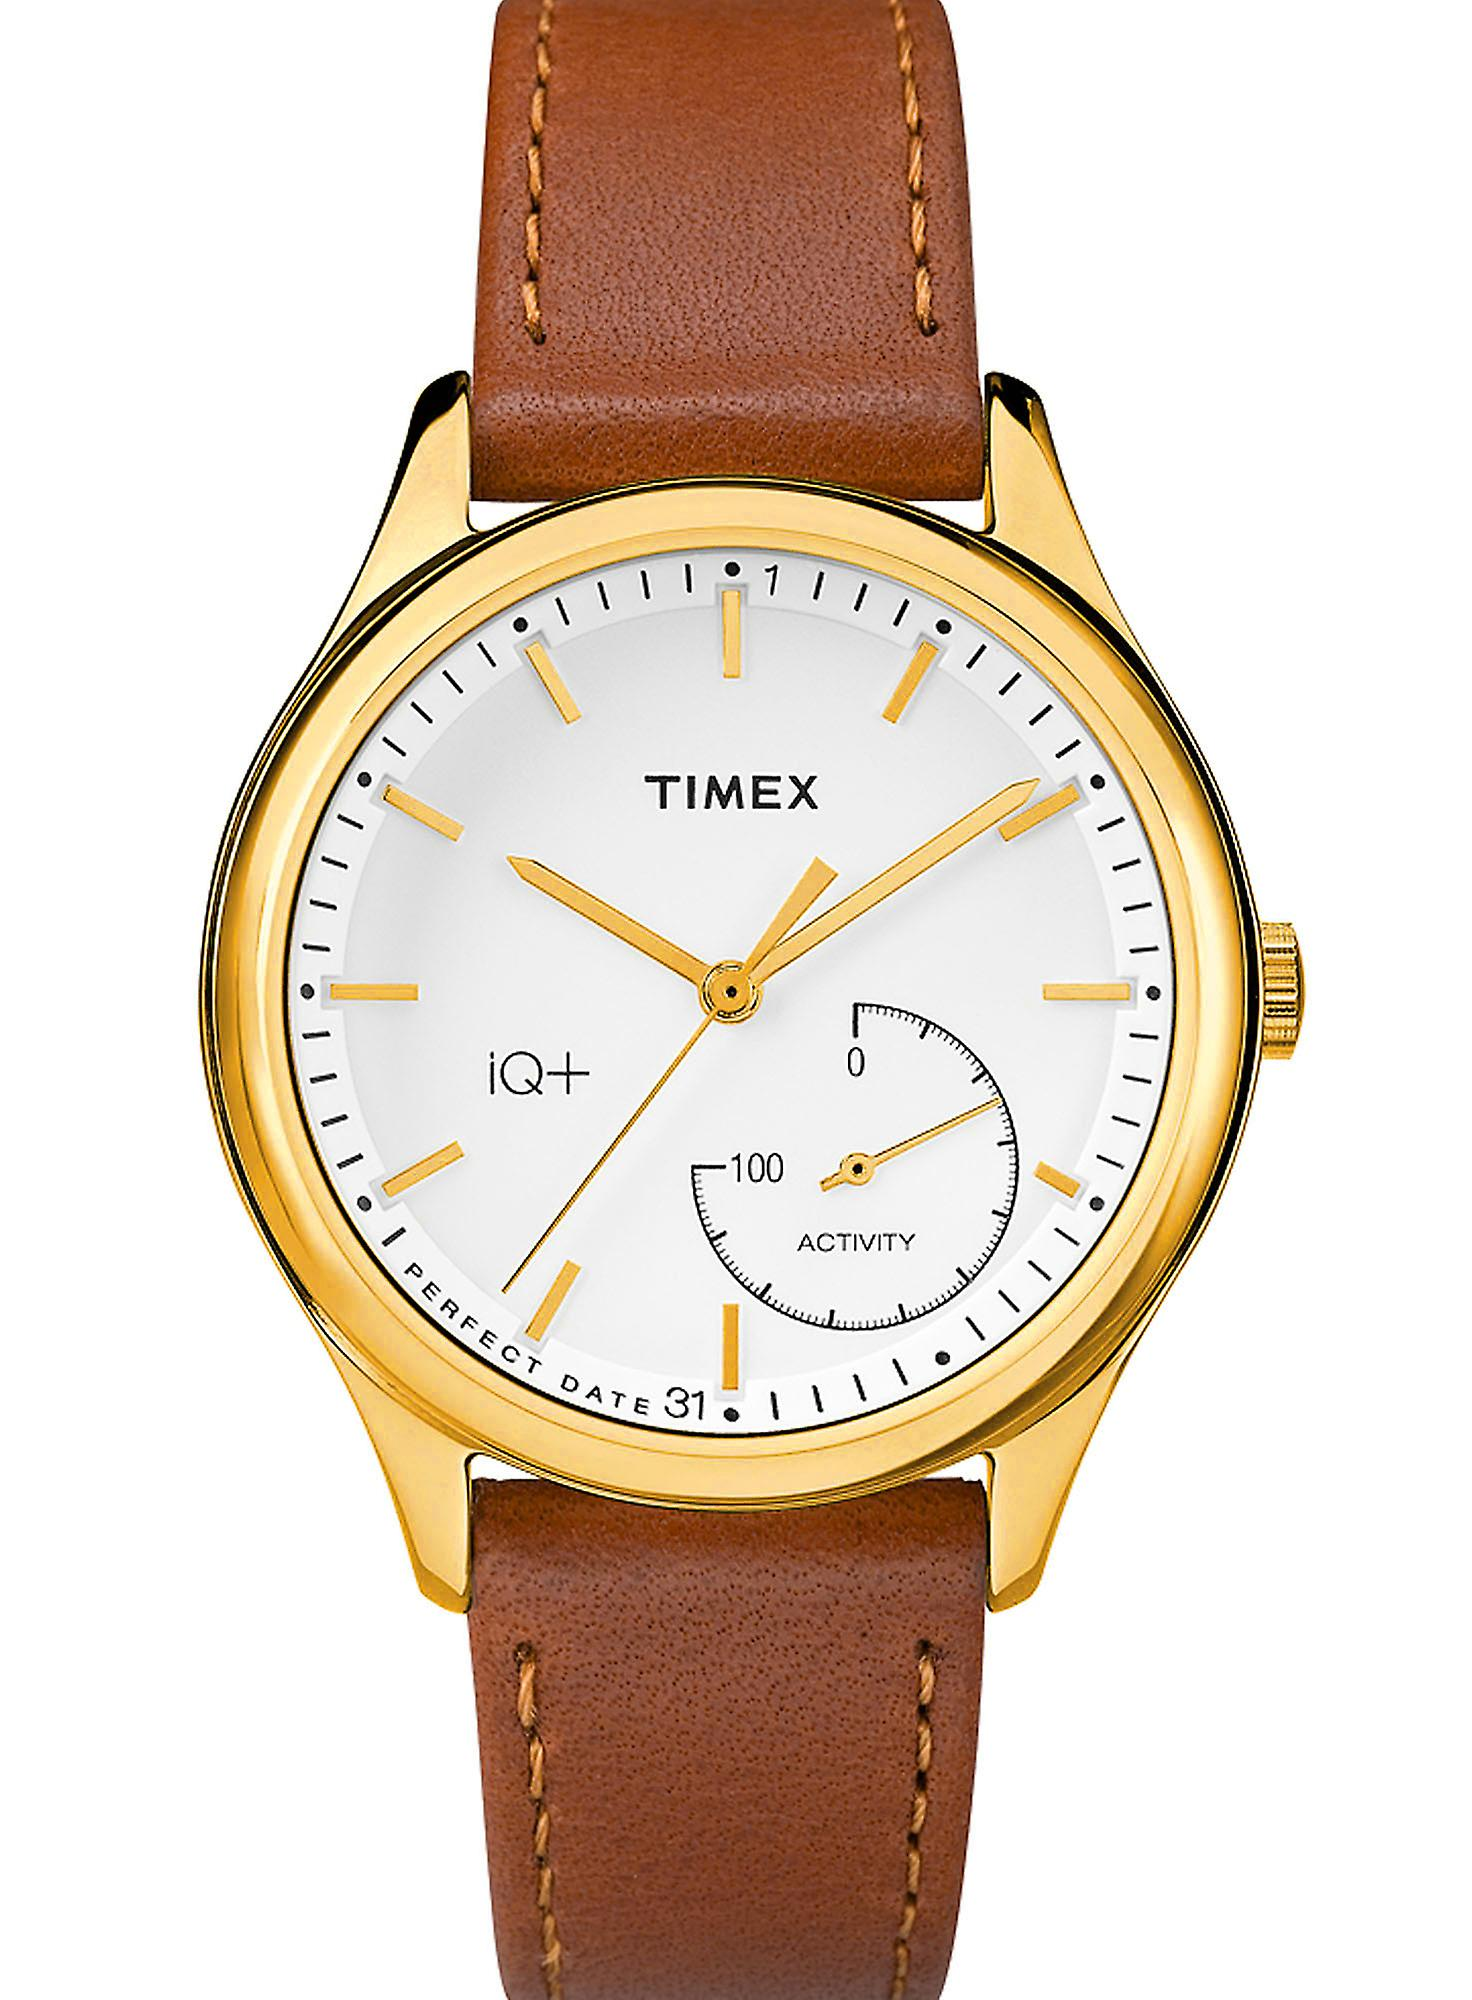 Timex Style Elevated Gold Plated Case Brown Leather Strap Ladies Watch TWG013600 36mm